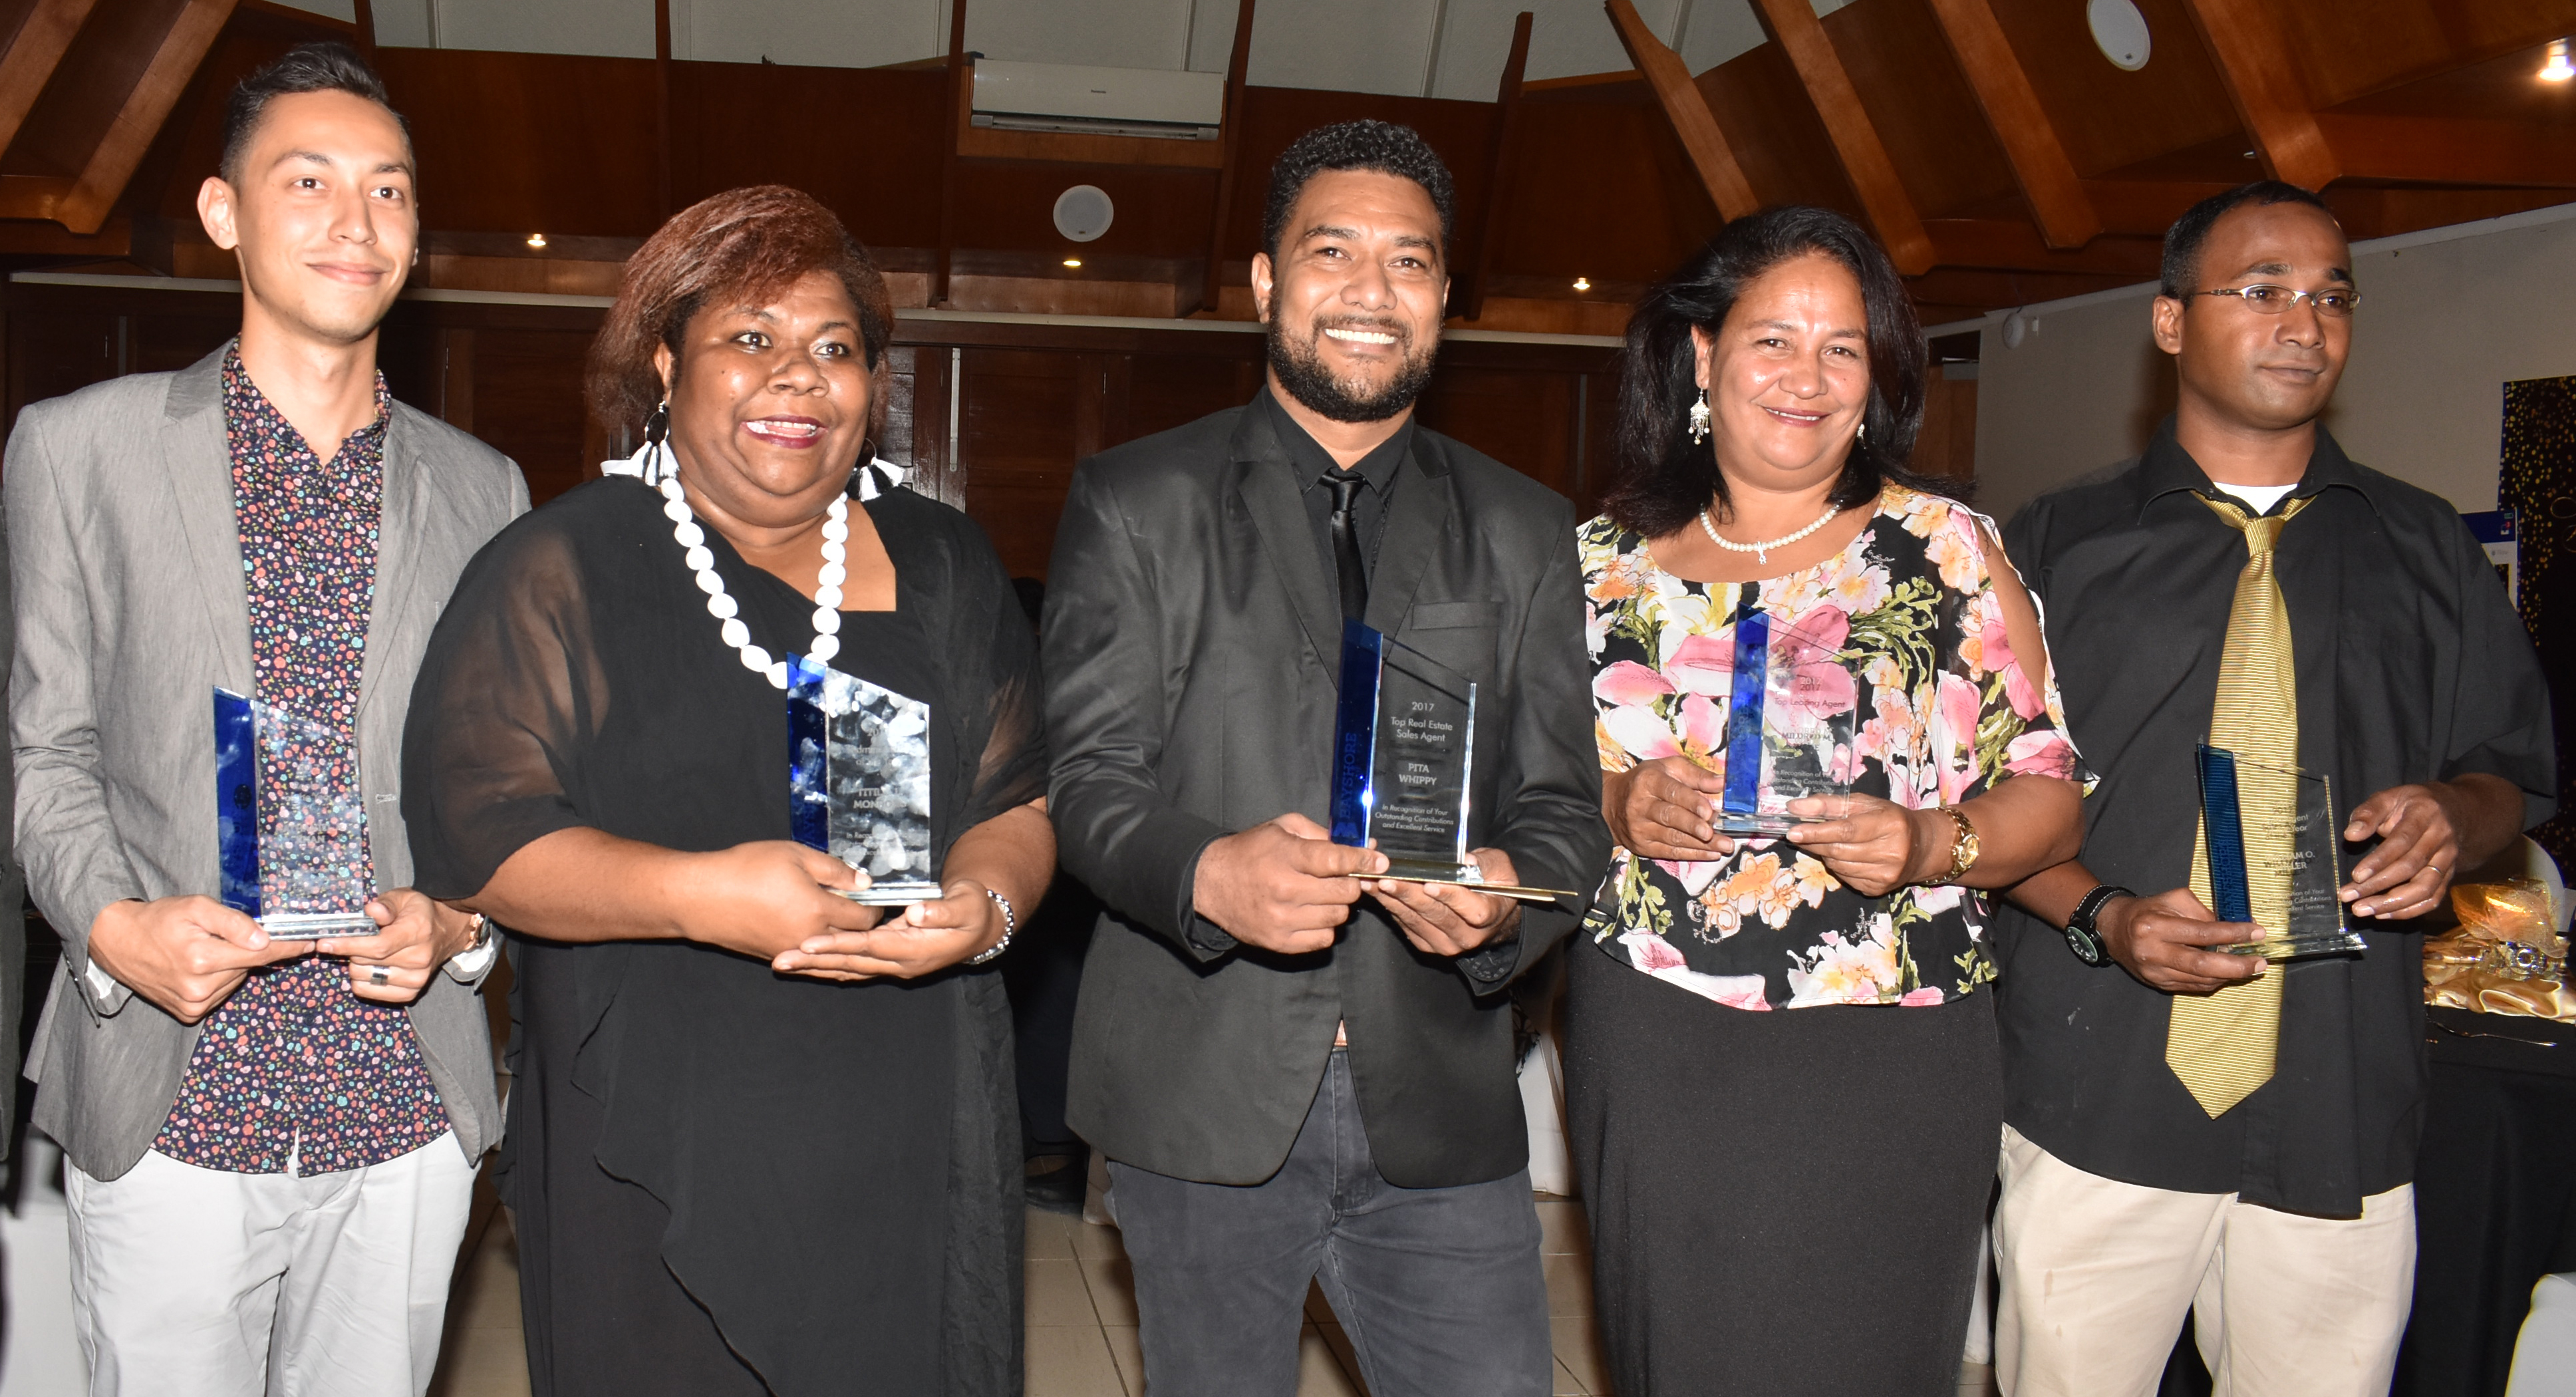 Bayshore Fiji Real-Estate Fiji Ltd award winners from left: Rookie of the year Nathaniel Khan, Administrator of the Year Titilia Moudoro, Top real-estate sales agent Peter Whippy, Top leasing agent Mildred Wade and Top Overall Agent of the Year William Miller during the Bayshore Fiji Real Estate at the awards night at the Tanoa International Hotel Nadi on June 30, 2018.  Photo: Waisea Nasokia